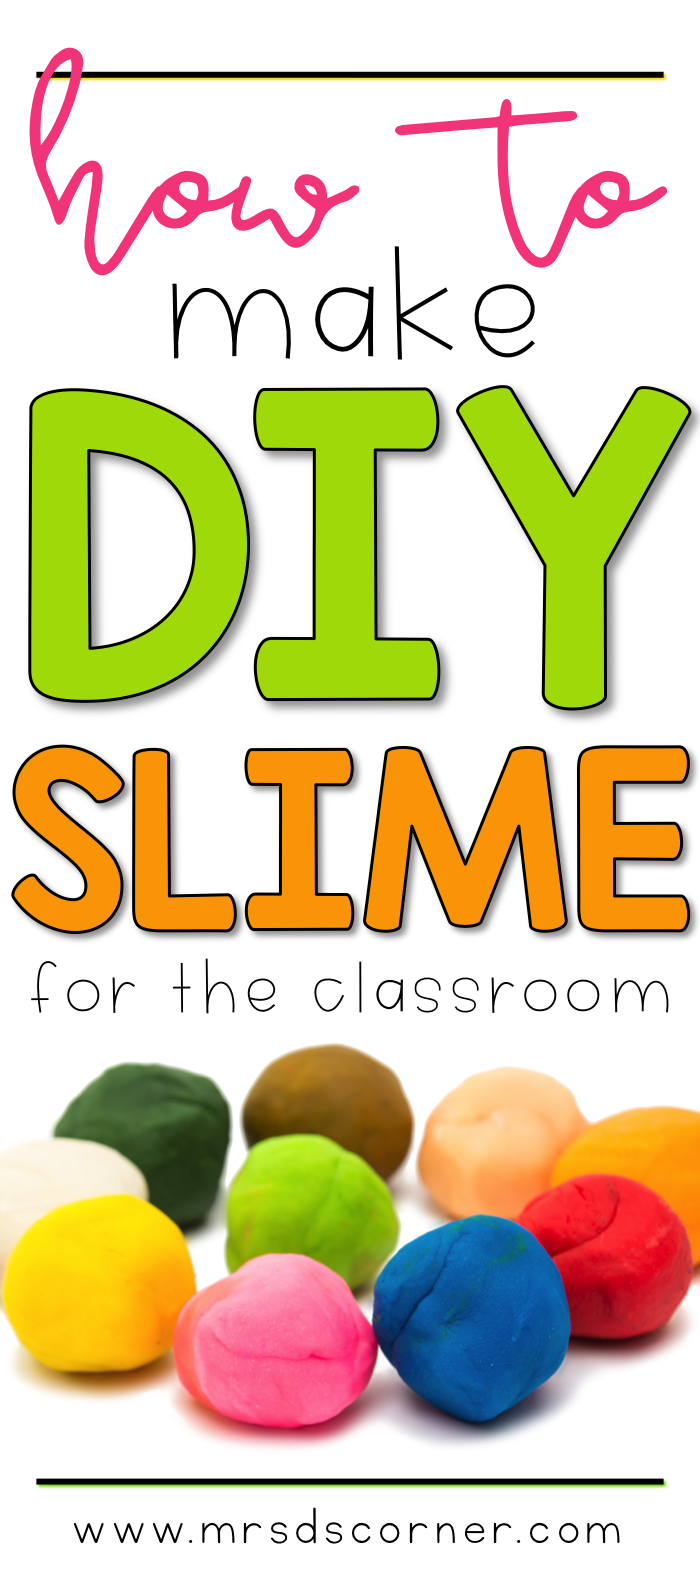 Sensory input for students how to make slime mrs ds corner ccuart Images